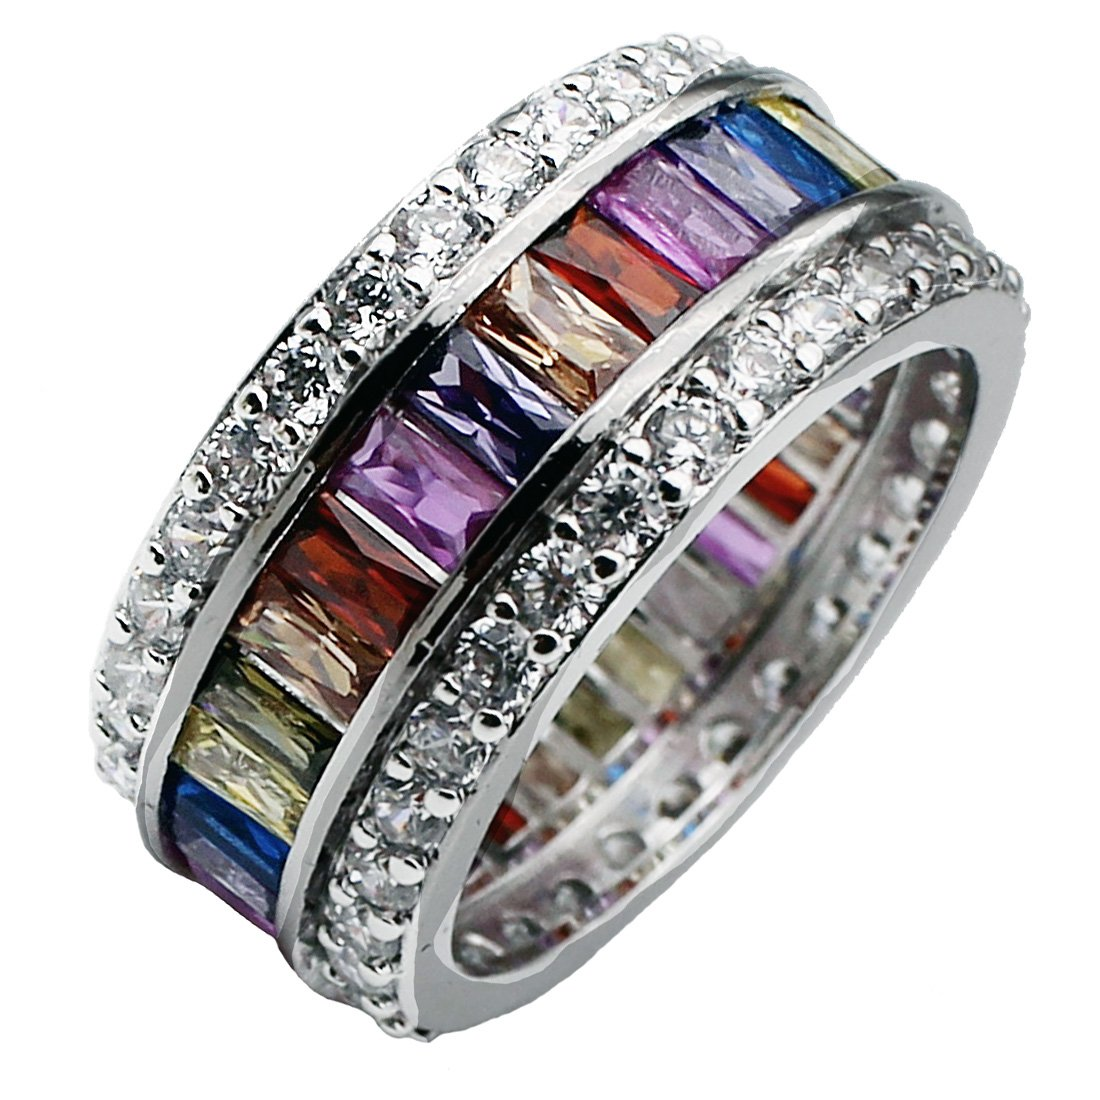 HERMOSA Wedding Valentine's Day Rings Gifts Morganite Topaz Garnet Amethyst Ruby Aquamarine Silver Ring (7) by Hermosa